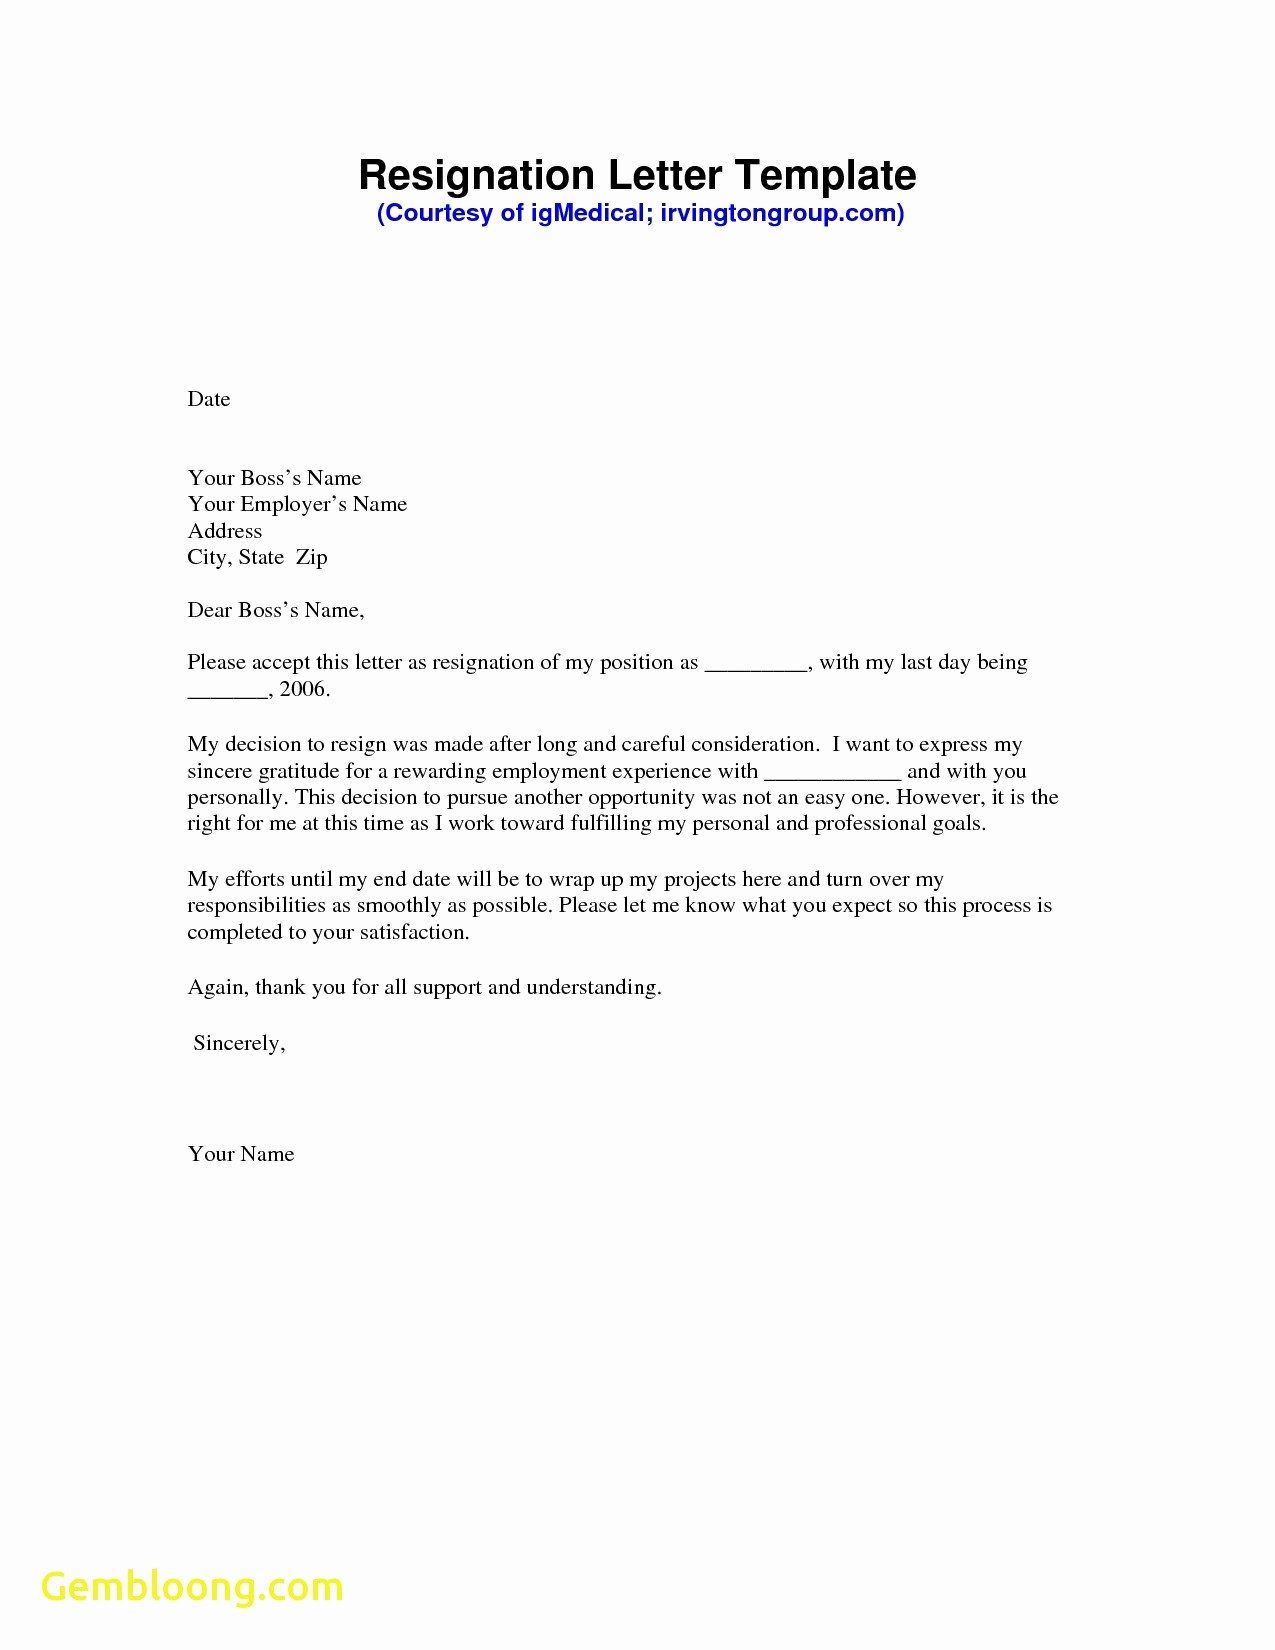 Employee Relocation Letter Template - How to Write A Cover Letter for A Relocation Job New Employment